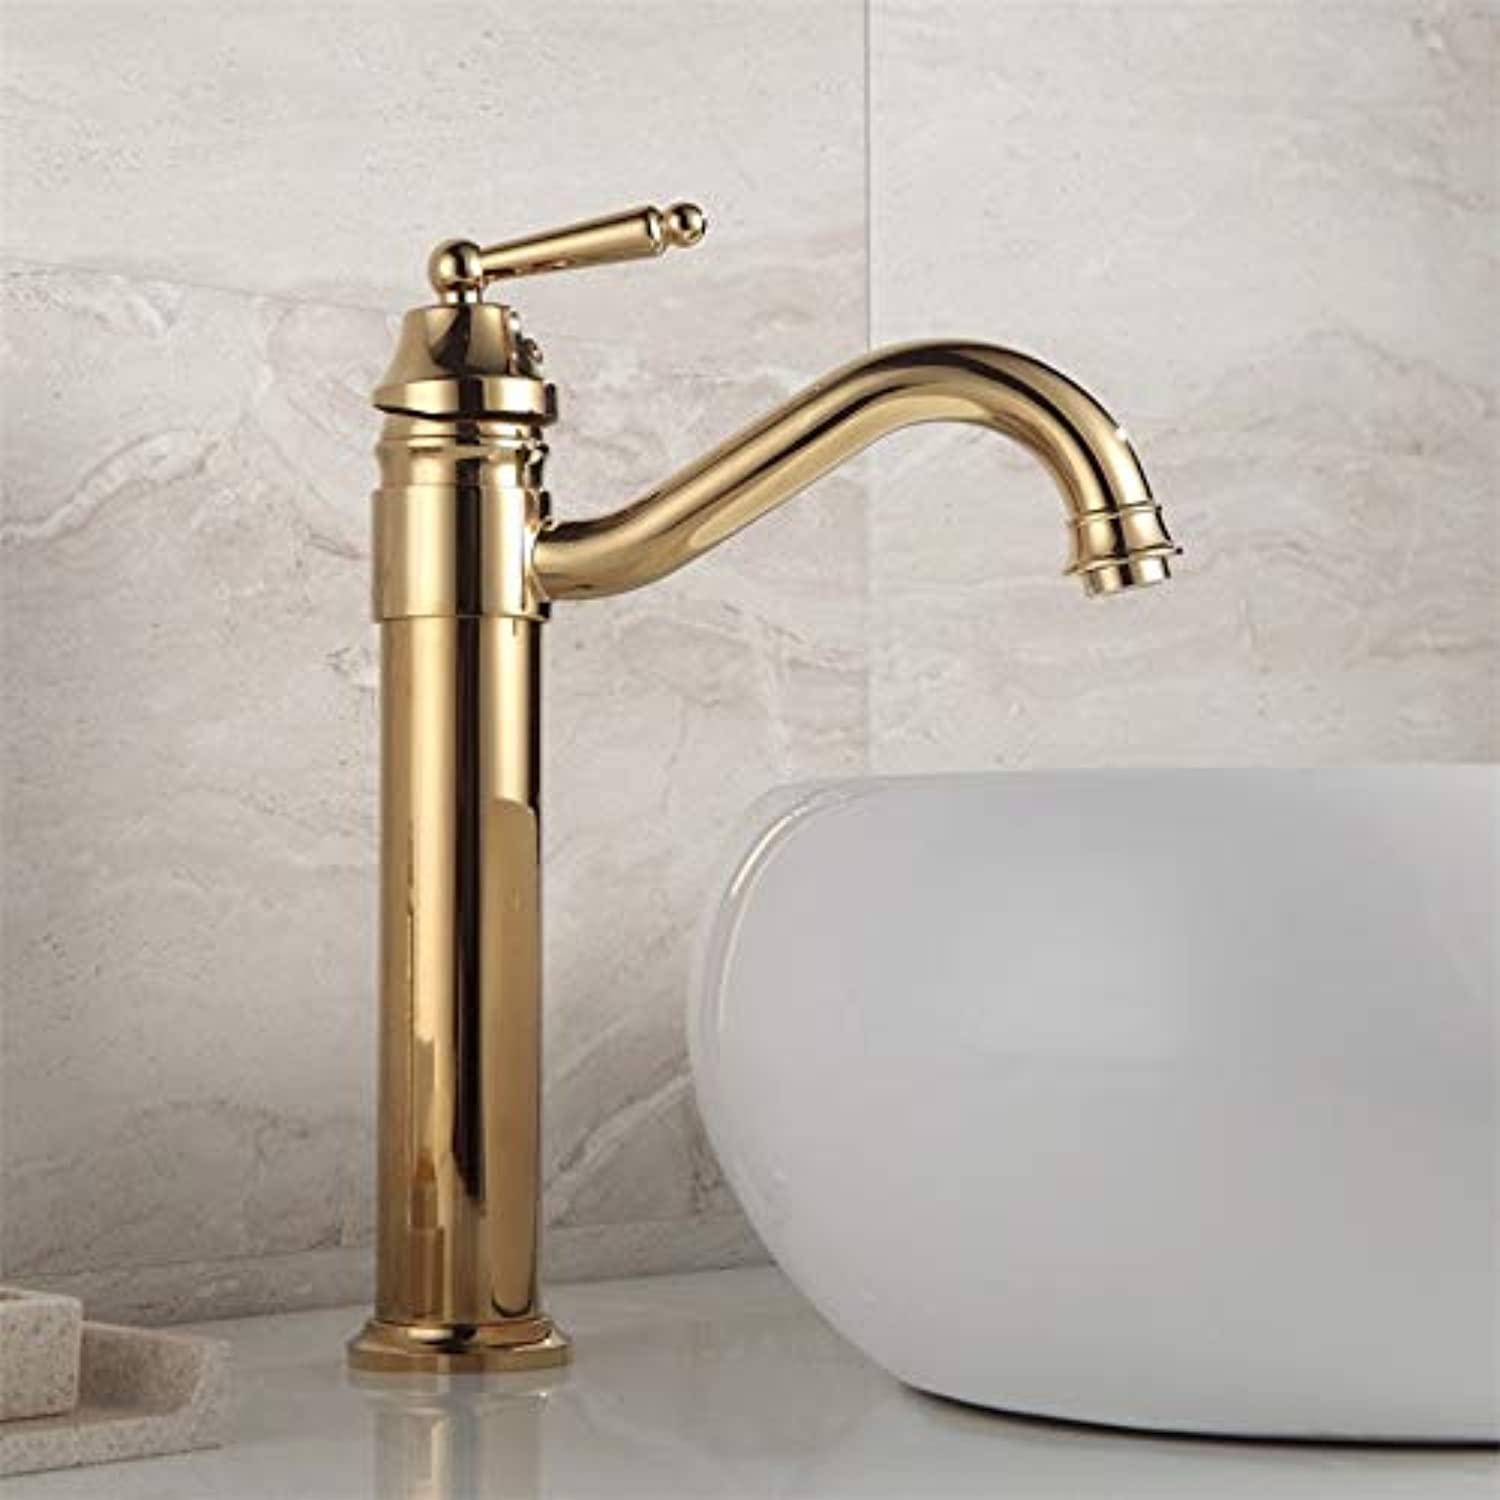 redOOY Taps Bathroom Sink Taps Shower Taps Basin Hot and Cold Faucet_Brass Basin Hot and Cold Faucet redating S Bend Bathroom Countertop Mixing Single Hole Single Handle